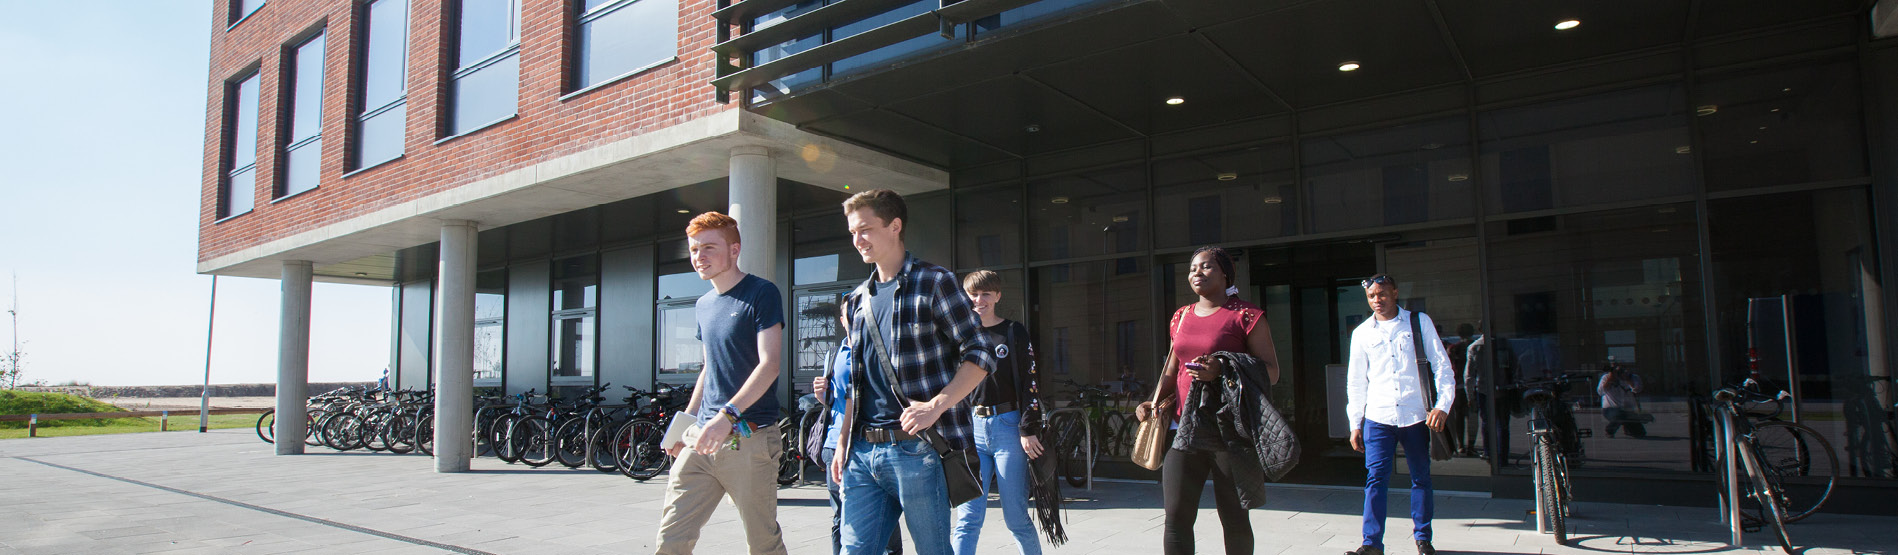 group of students walking out of a building